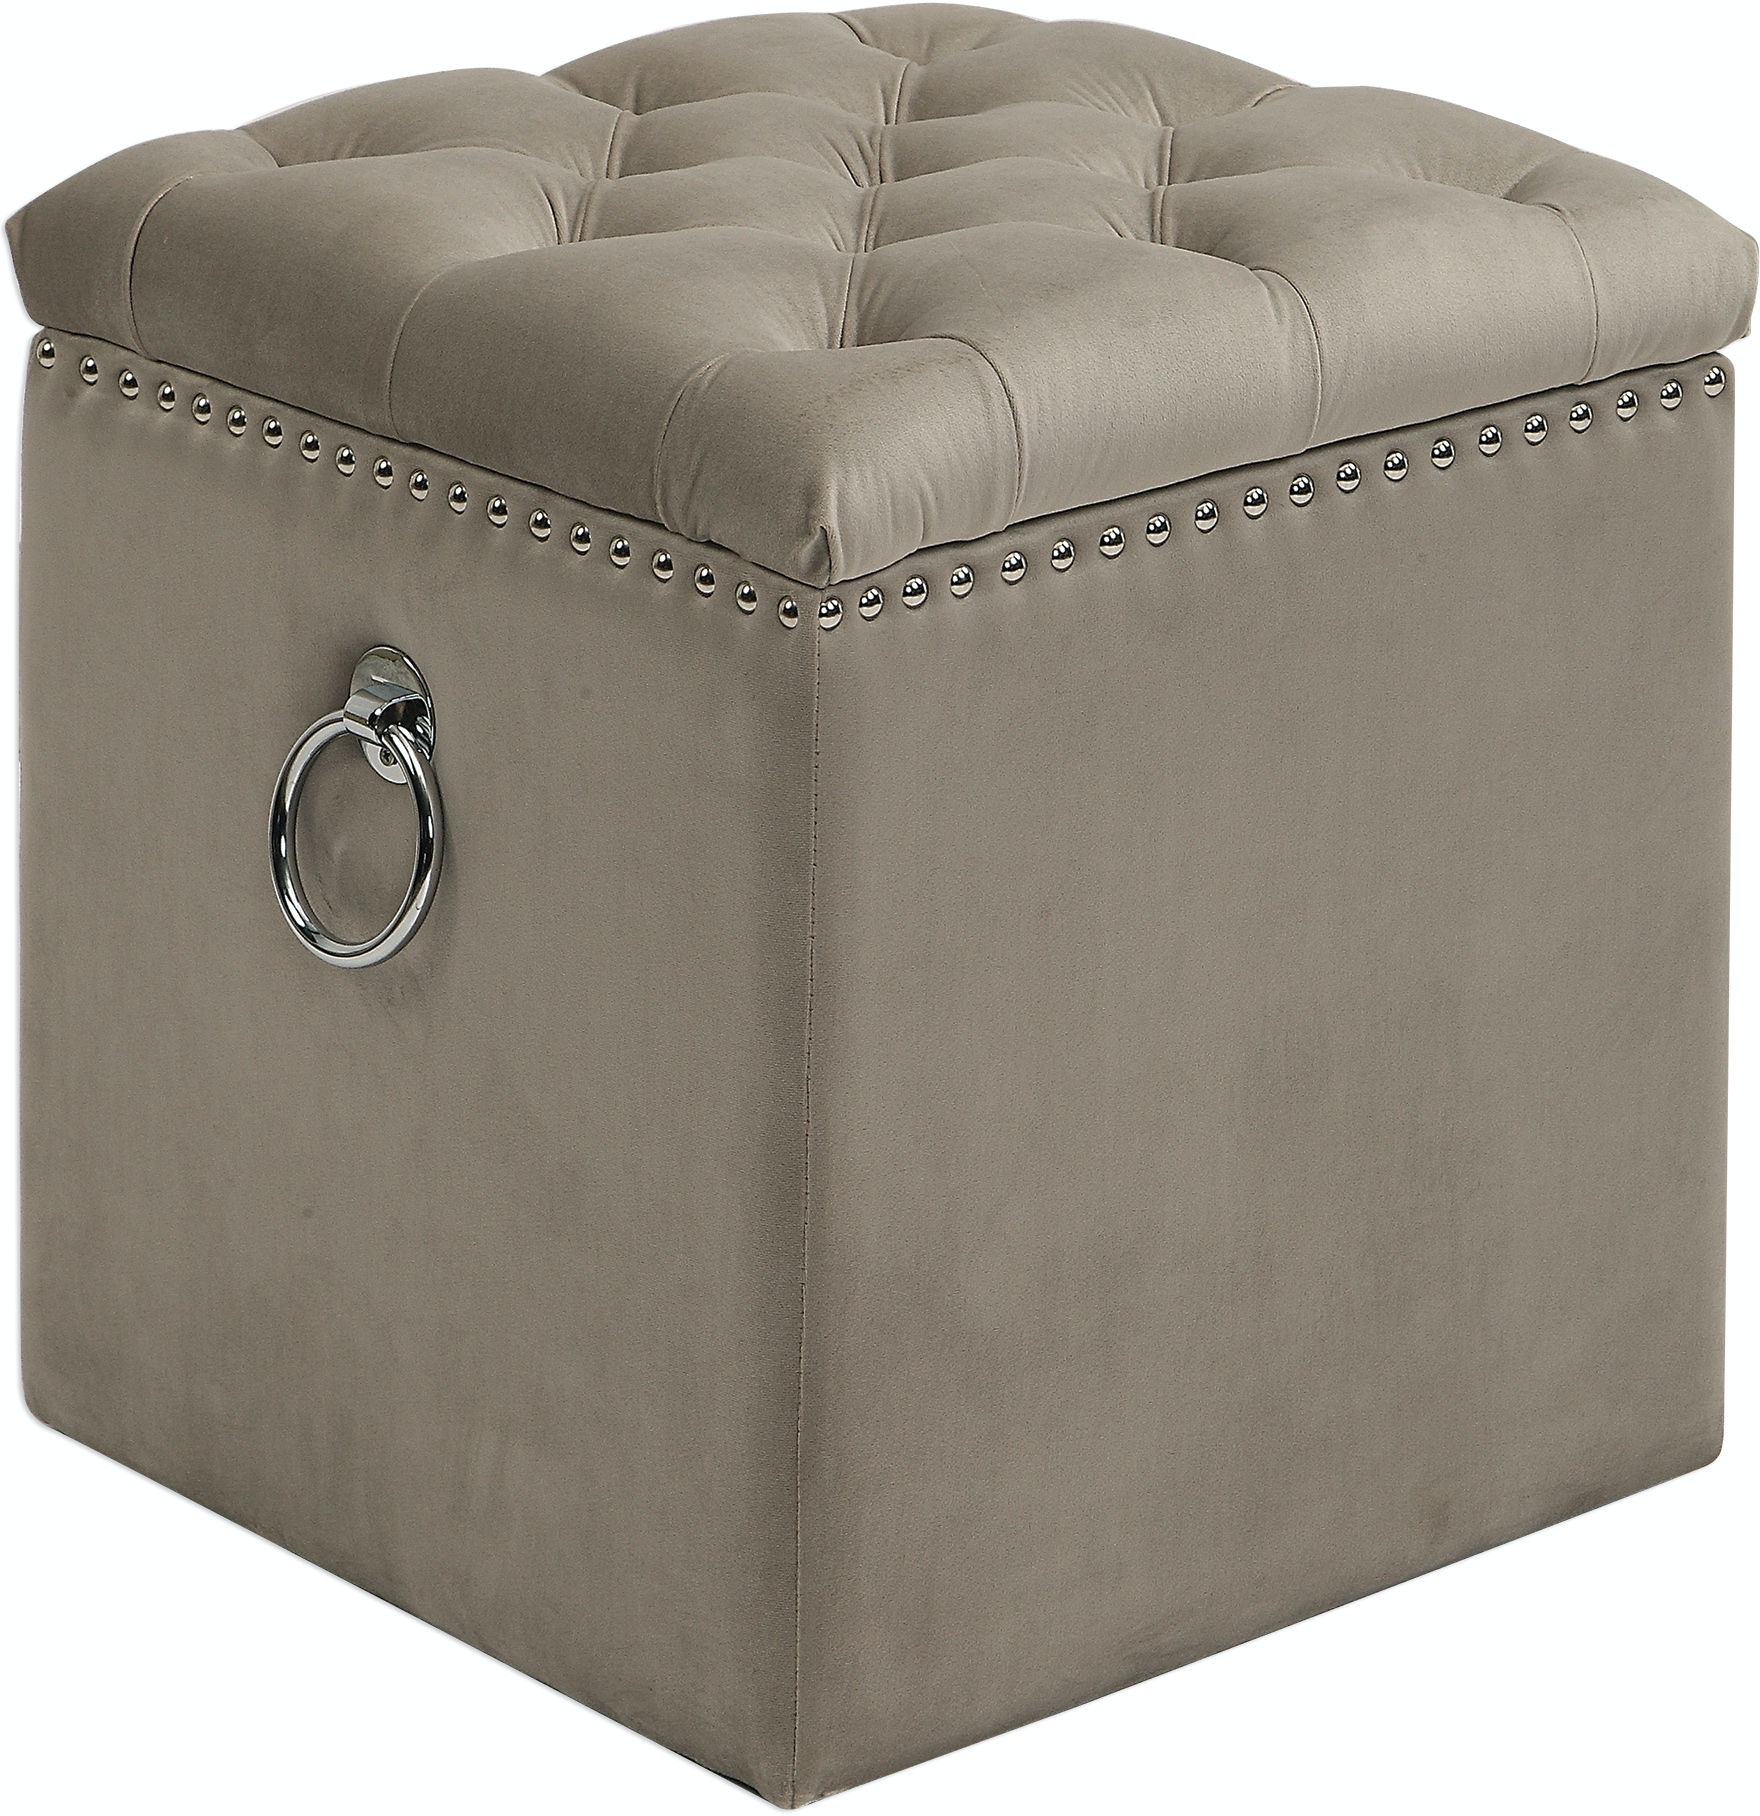 Marvelous Uttermost Living Room Talullah Tufted Storage Ottoman Ut23455 Walter E Smithe Furniture Design Unemploymentrelief Wooden Chair Designs For Living Room Unemploymentrelieforg